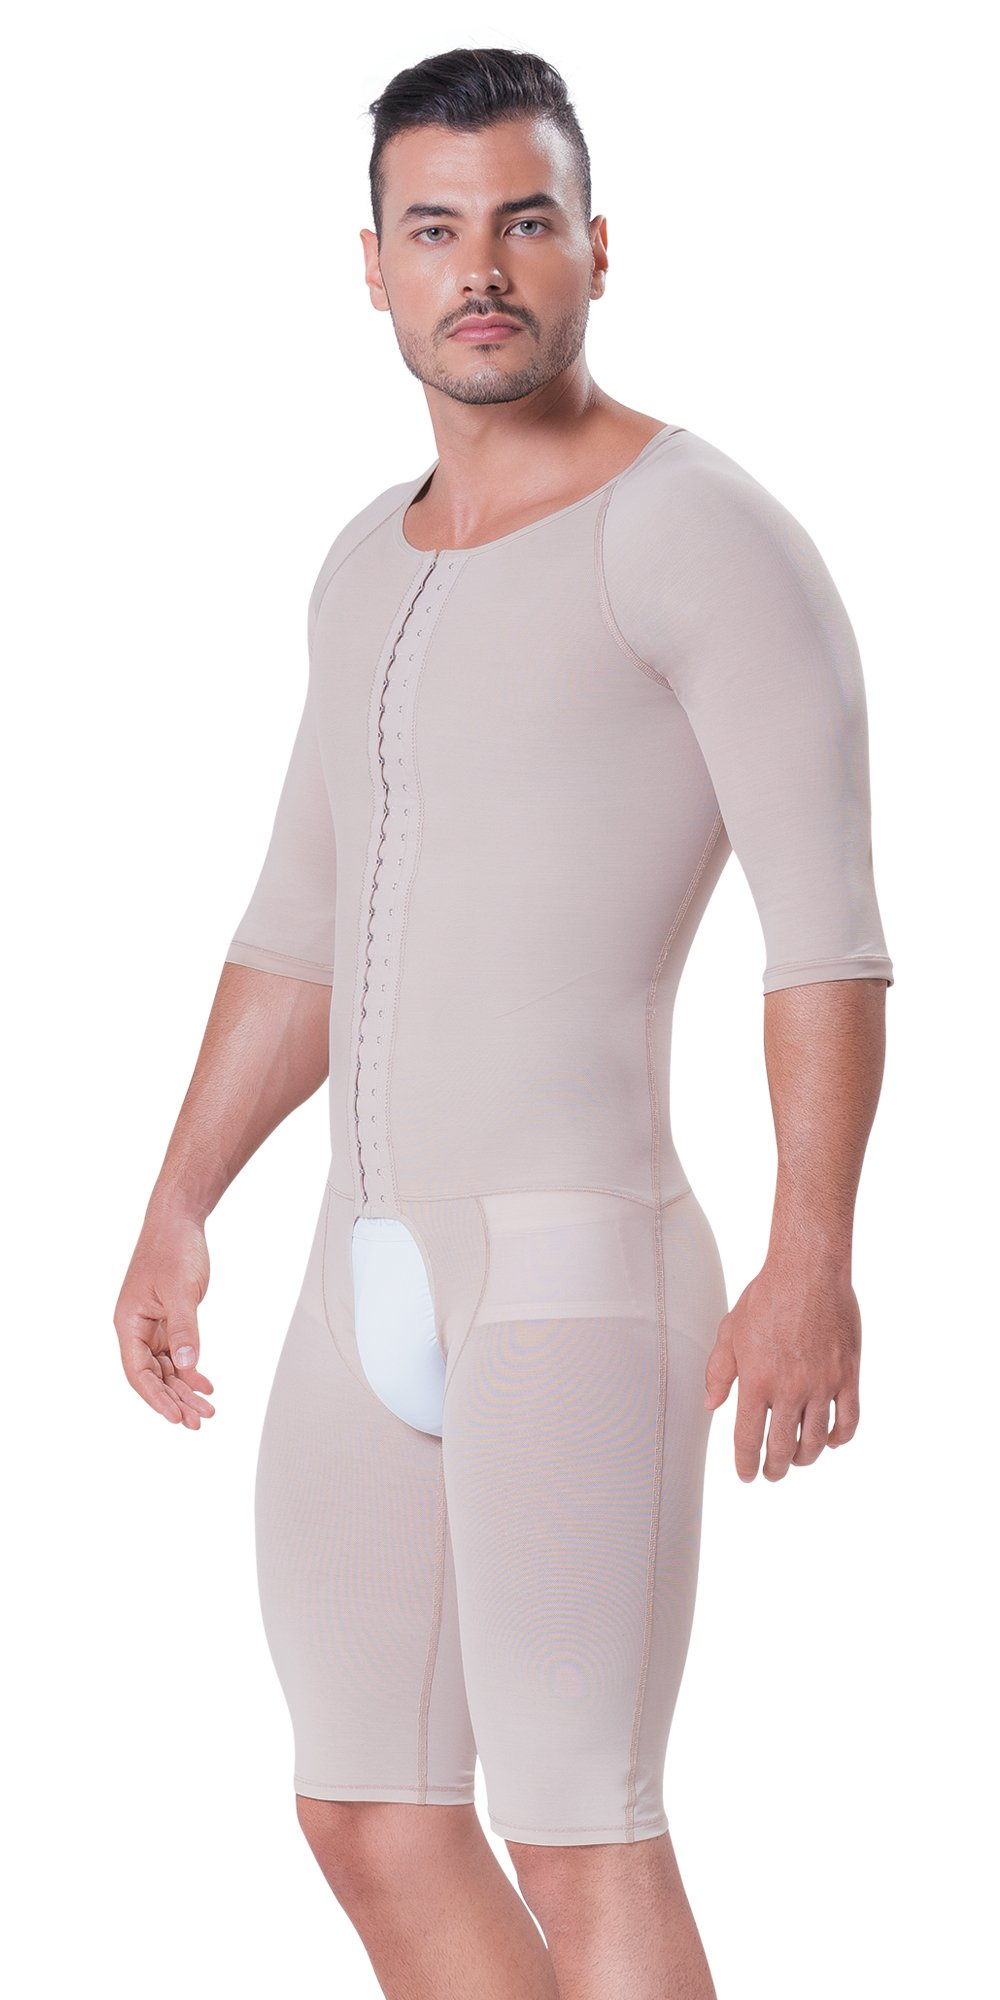 Fajitex Men's Fajas Colombianas Para Hombre Abdomen, Chest, Back, arms and Legs Shaping Girdle Full Body 026960 (XXX-Large, Beige)